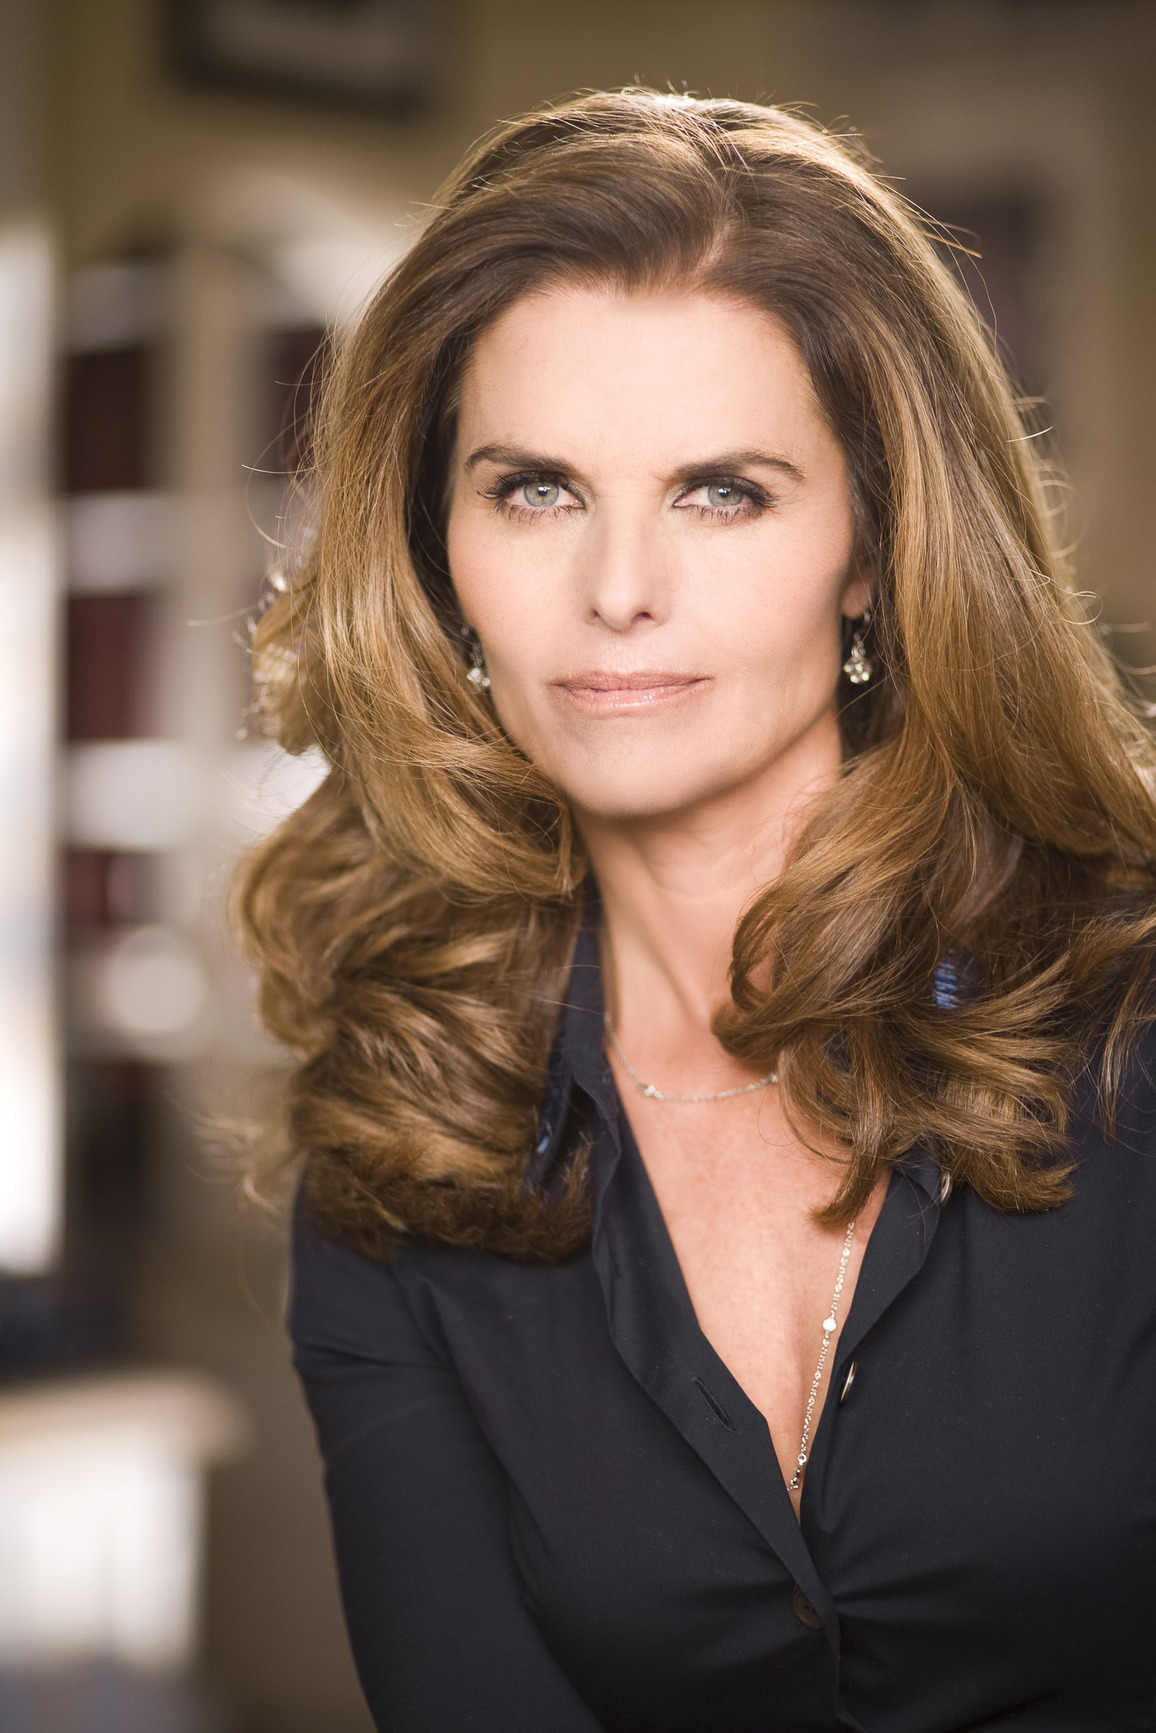 HBO - The Alzheimer's Disease Children's ProjectInterview and Portrait session with Maria Shriver at her home/office.Brentwood, CA, November 11, 2008